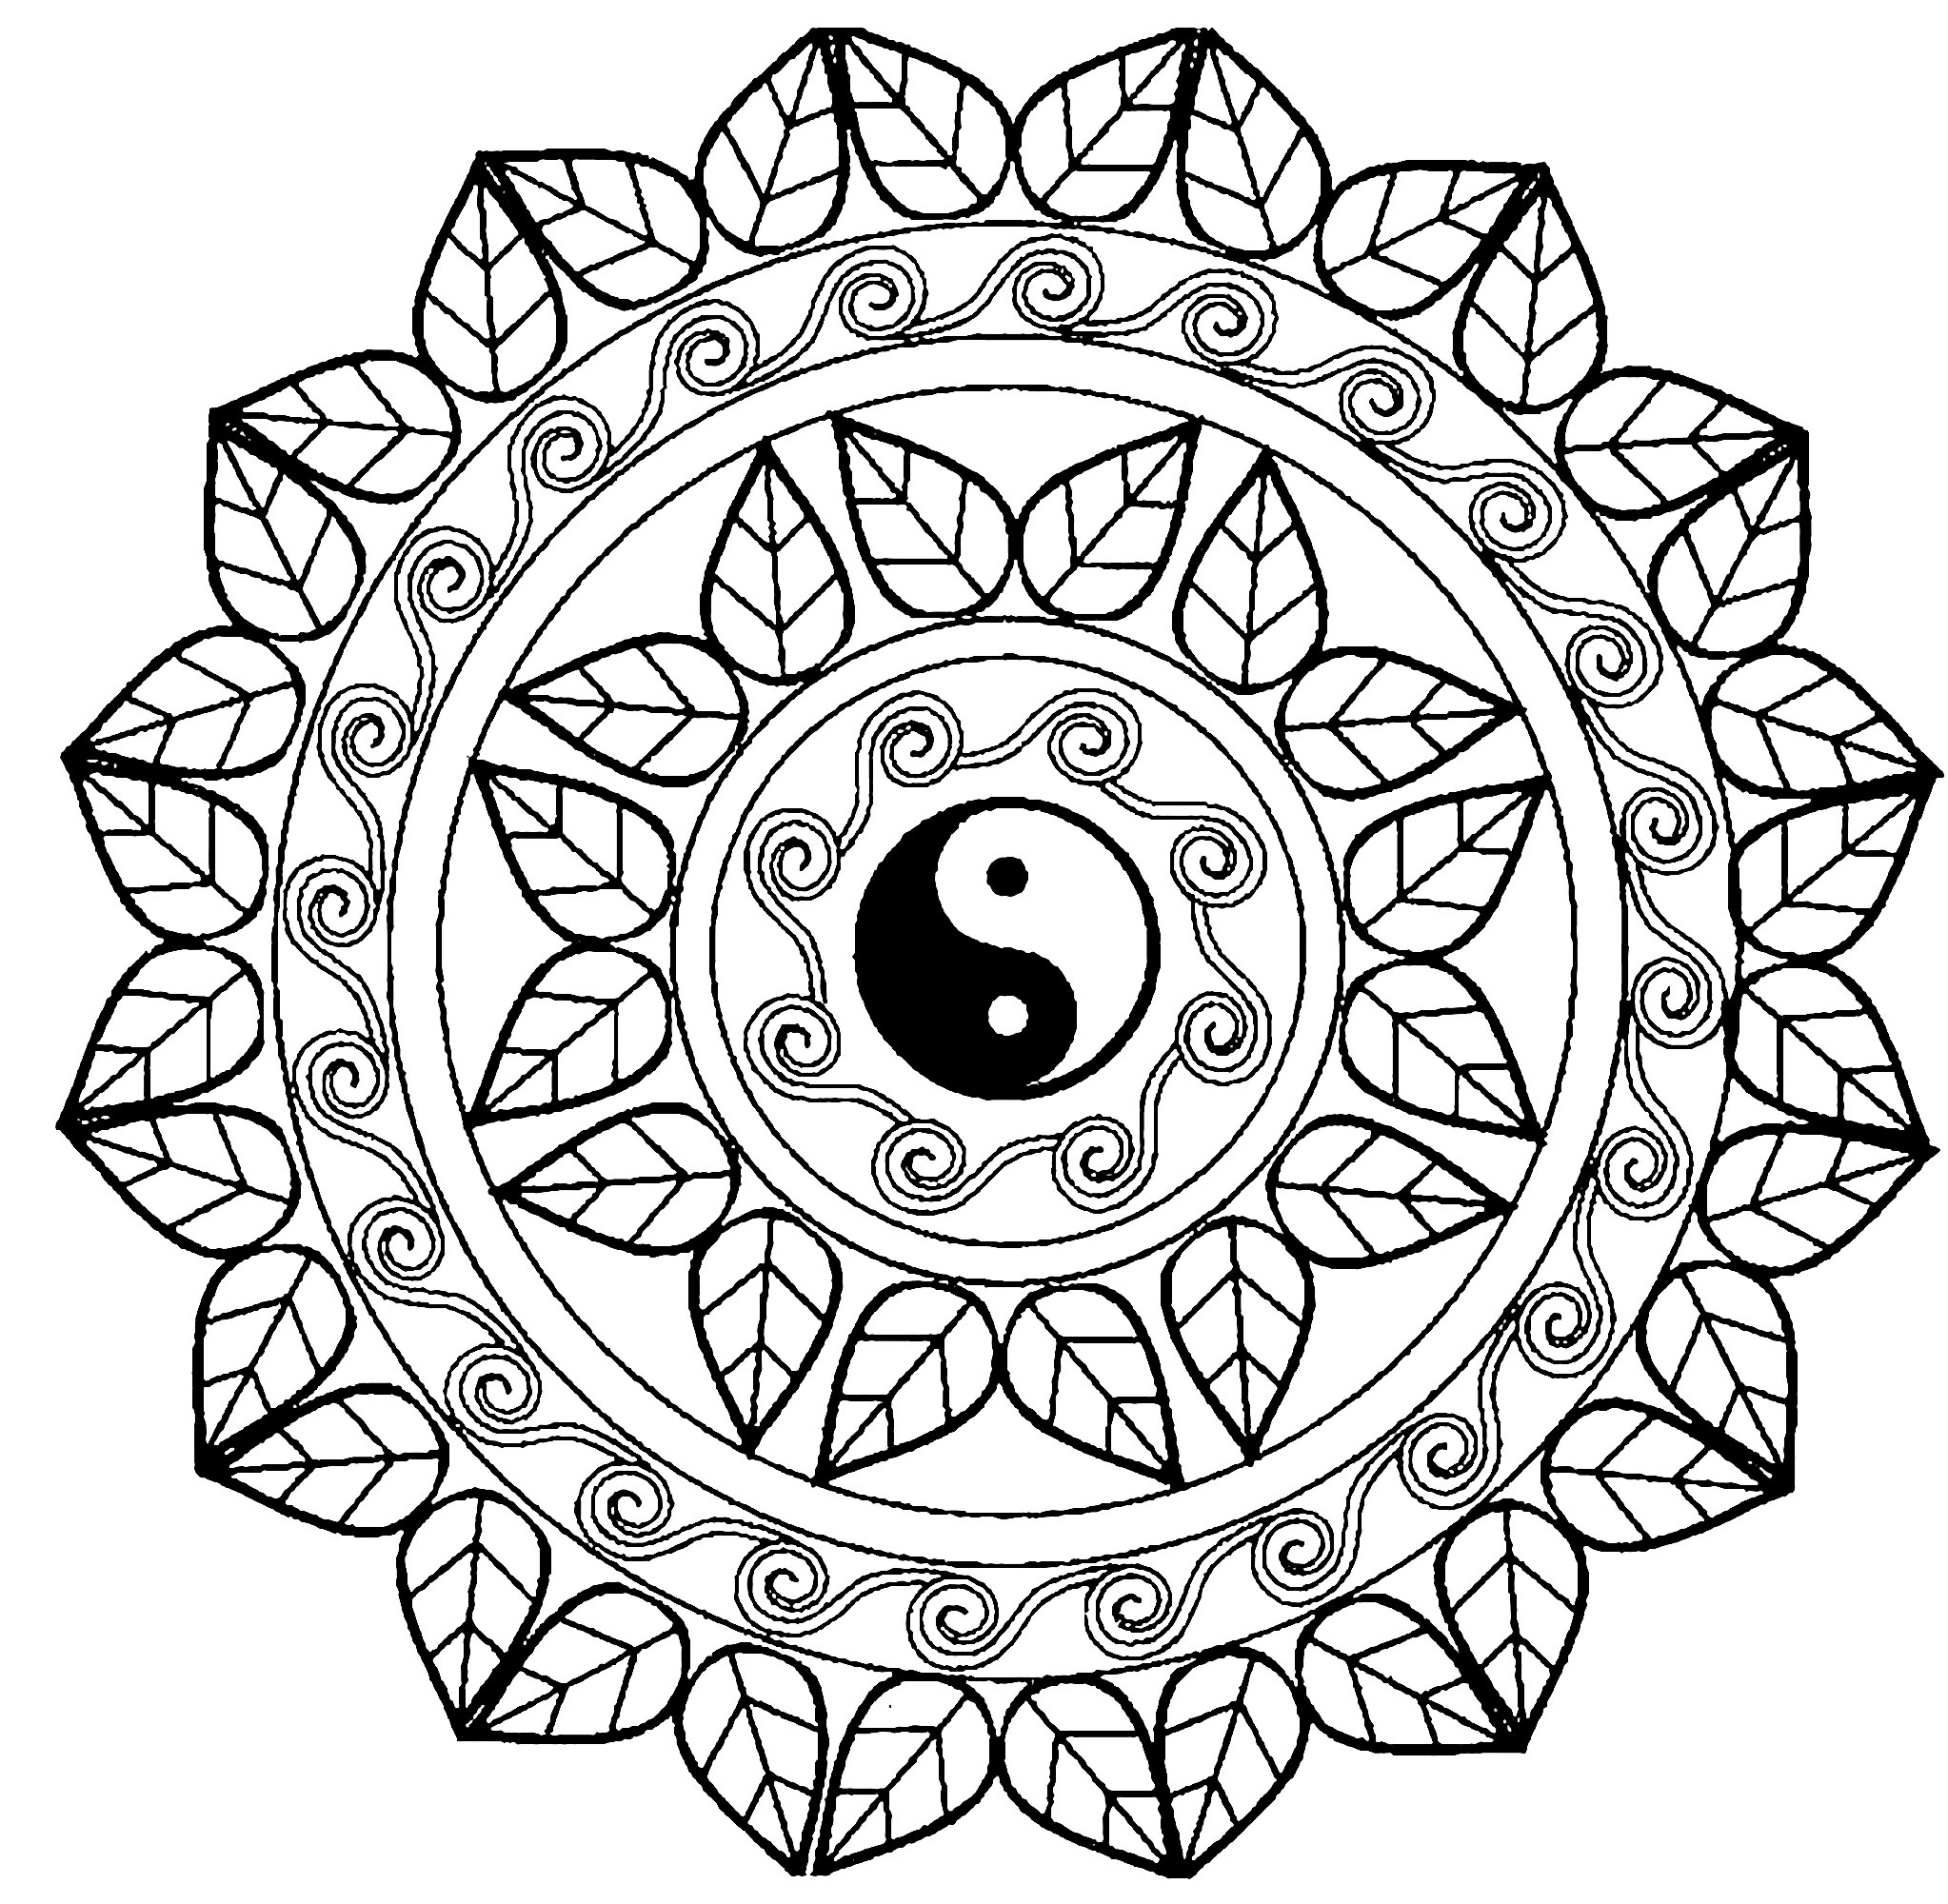 Mandala Coloring Pages For Adults Alluring Mandala Yin Yang  Mandalas  Coloring Pages For Adults  Justcolor Review